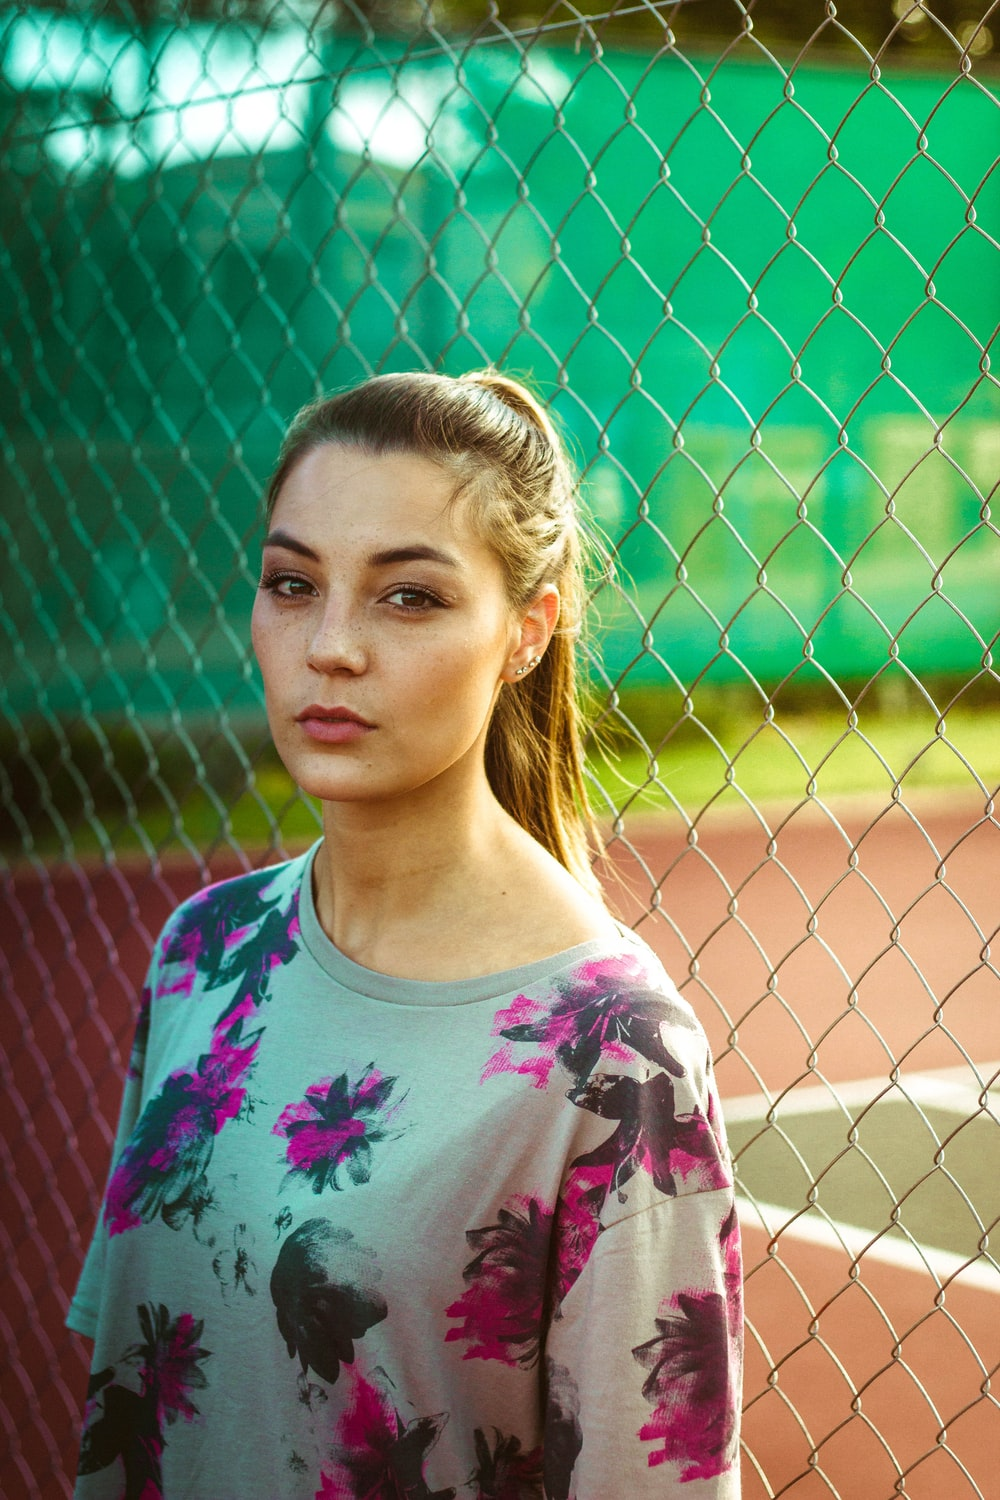 woman wearing floral top beside chain link fence during day